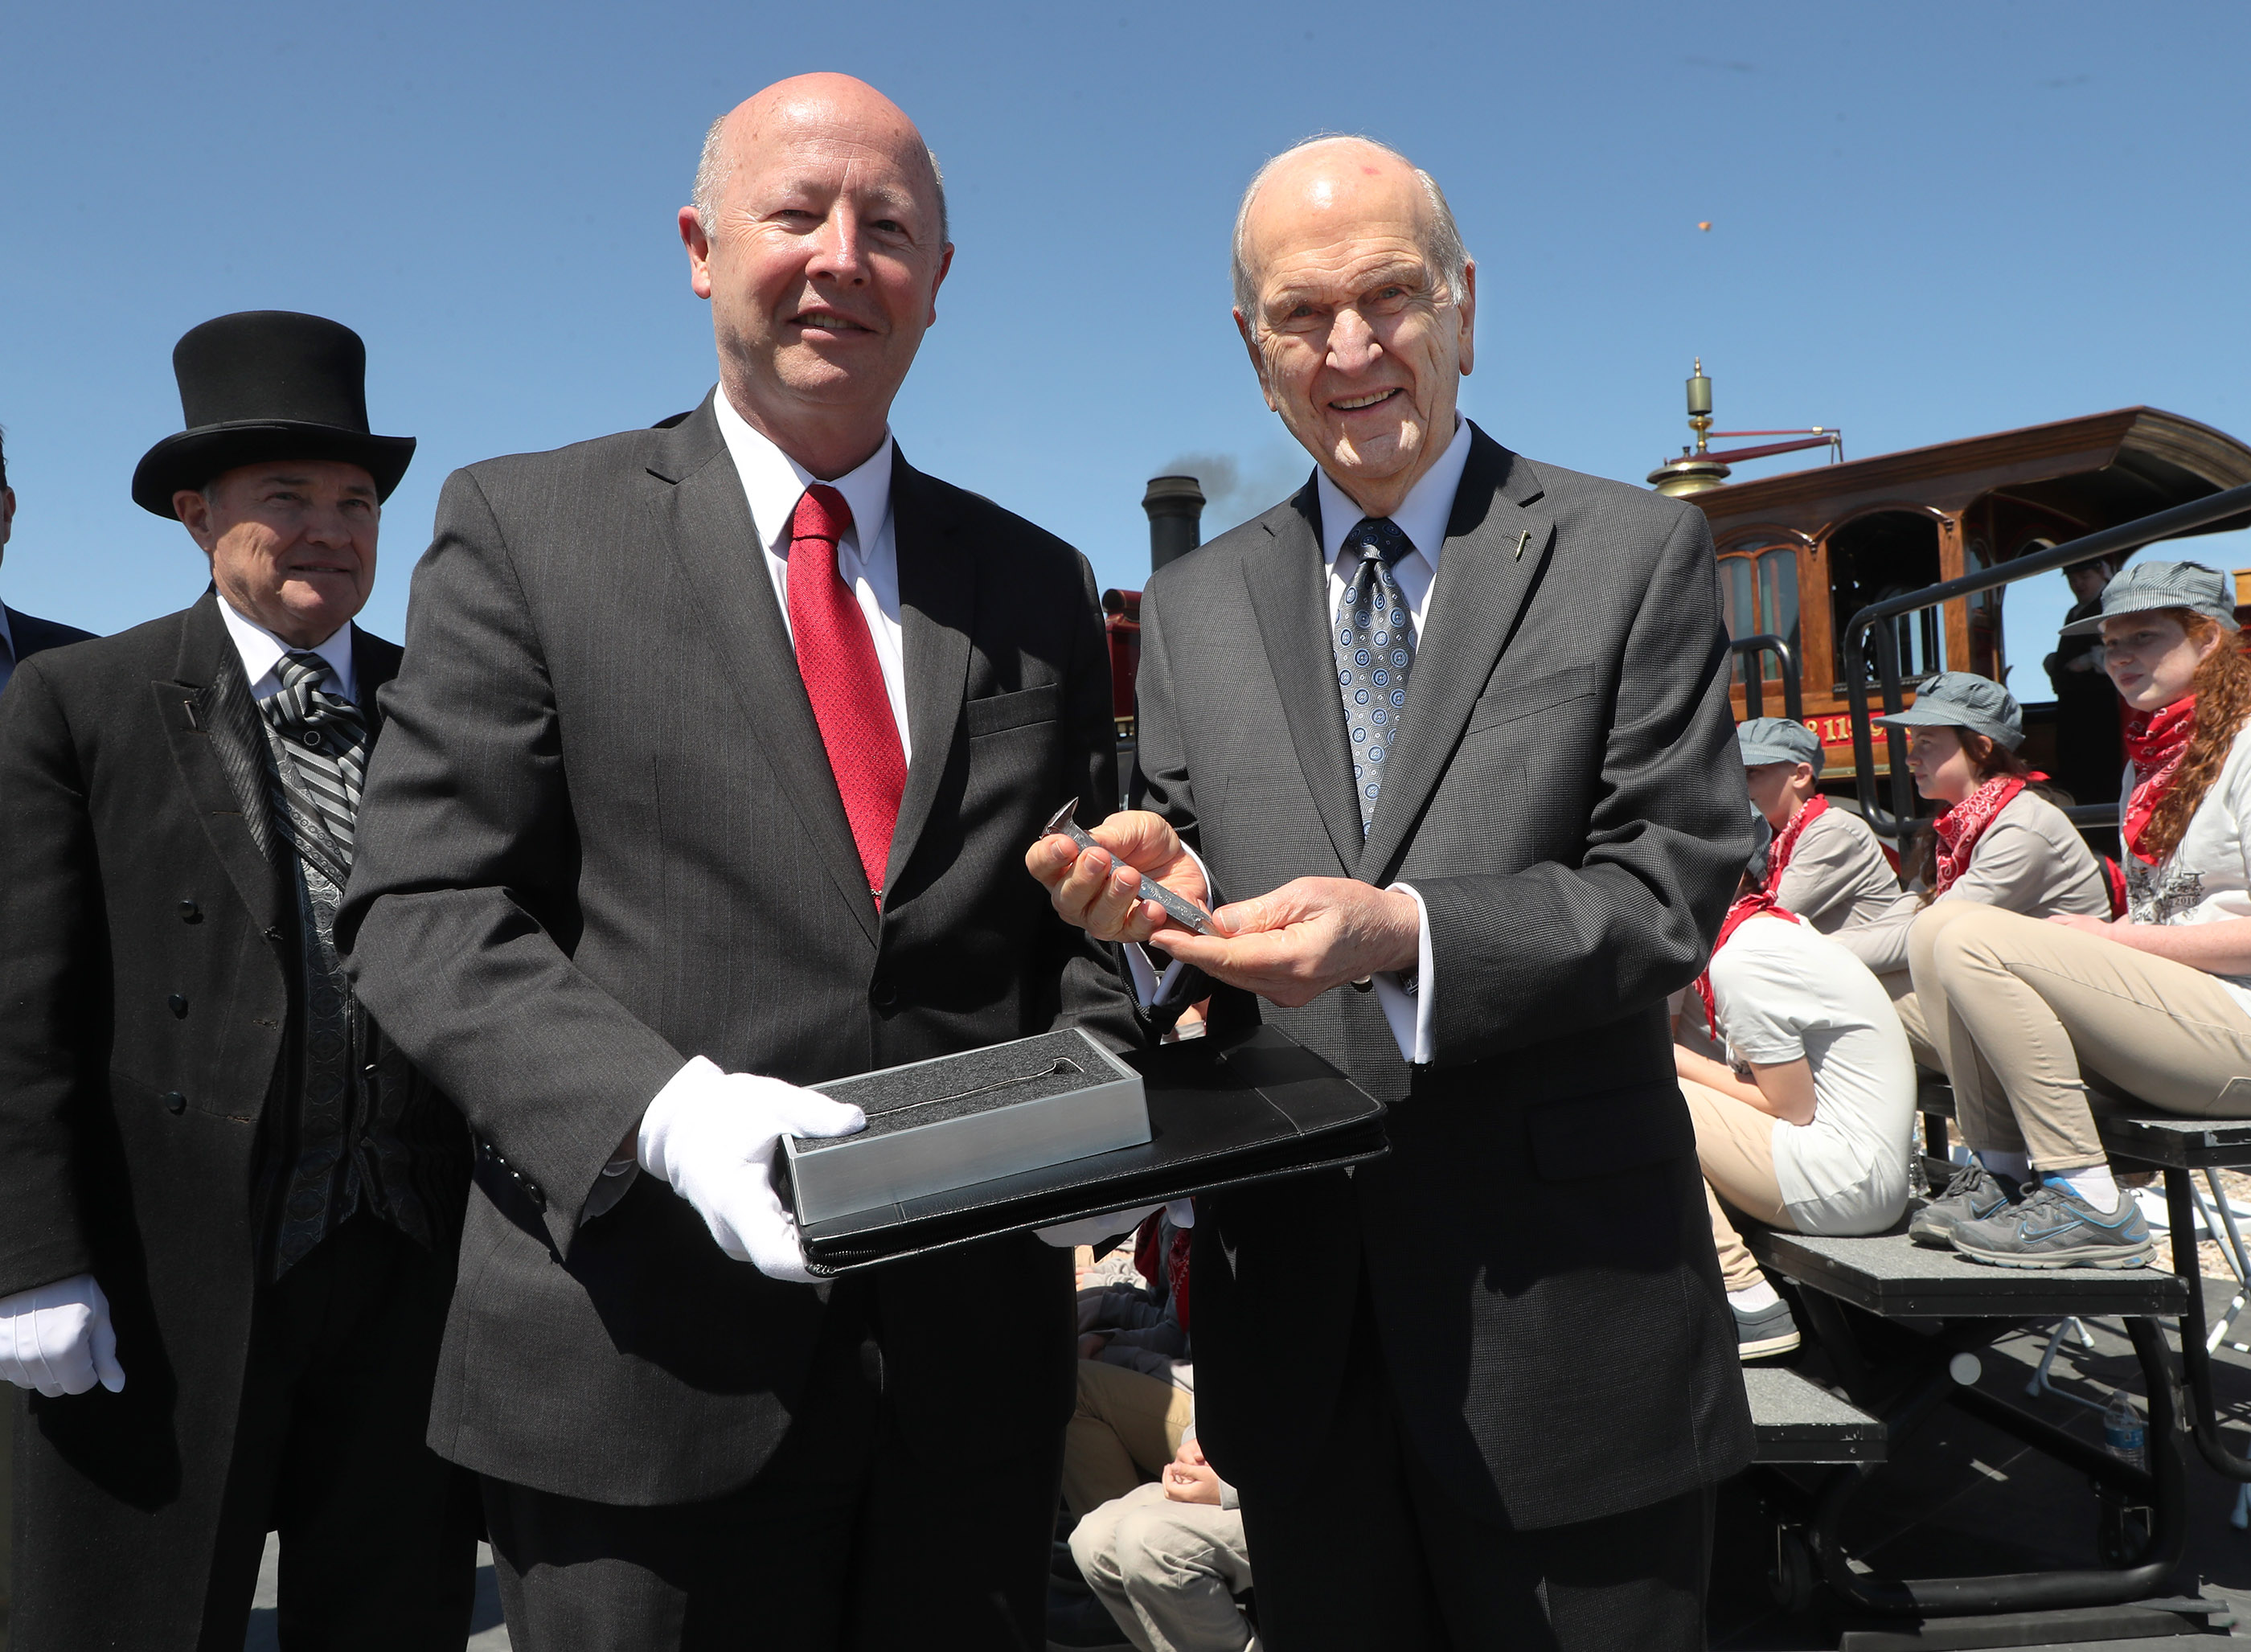 President Russell M. Nelson of The Church of Jesus Christ of Latter-day Saints, and historian Rick Turley hold the historic Utah spike during the 150th anniversary celebration of the transcontinental railroad at the Golden Spike National Historical Park in Promontory Summit on Friday, May 10, 2019.